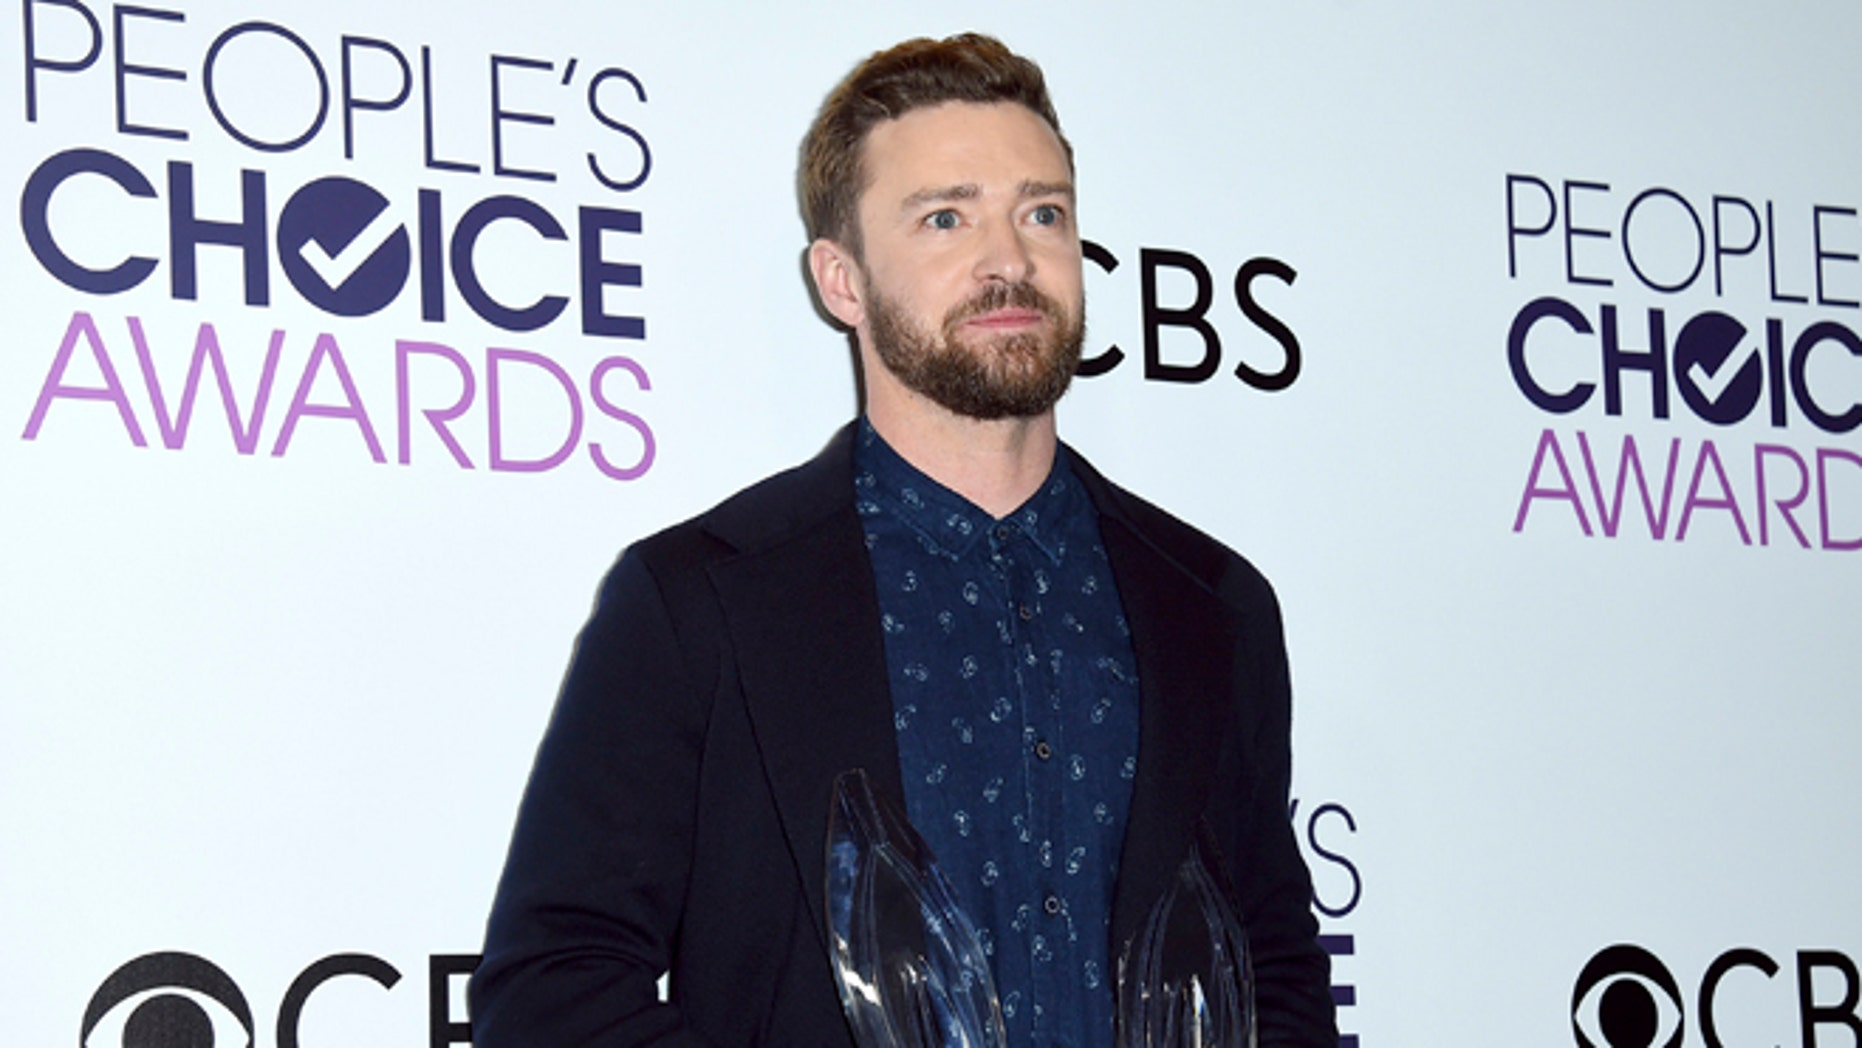 Justin Timberlake will perform at this year's Oscars ceremony.